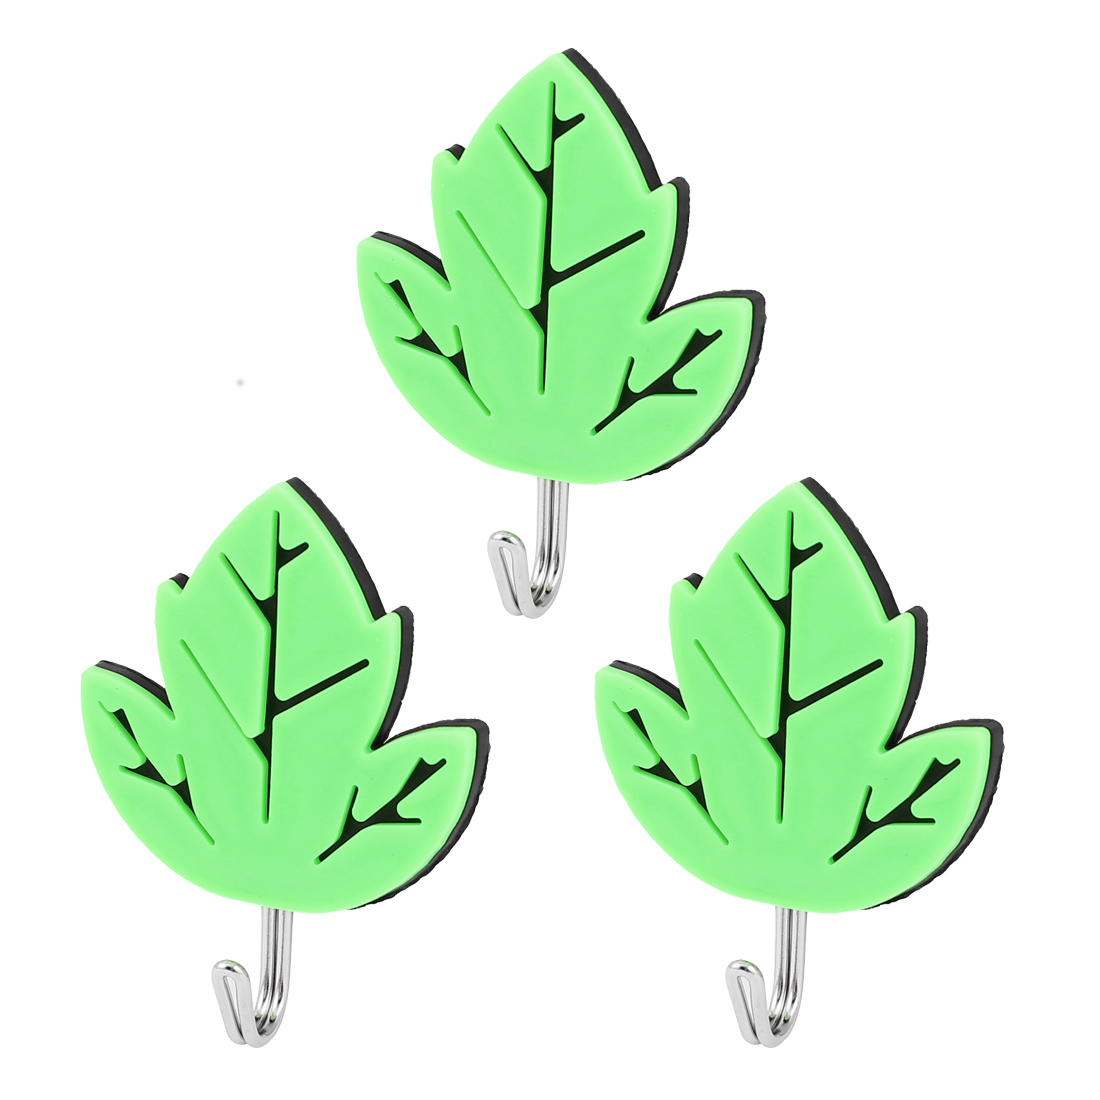 Leaf Shaped Sticky Self Adhesive Bathroom Kitchen Door Wall Hook 3Pcs